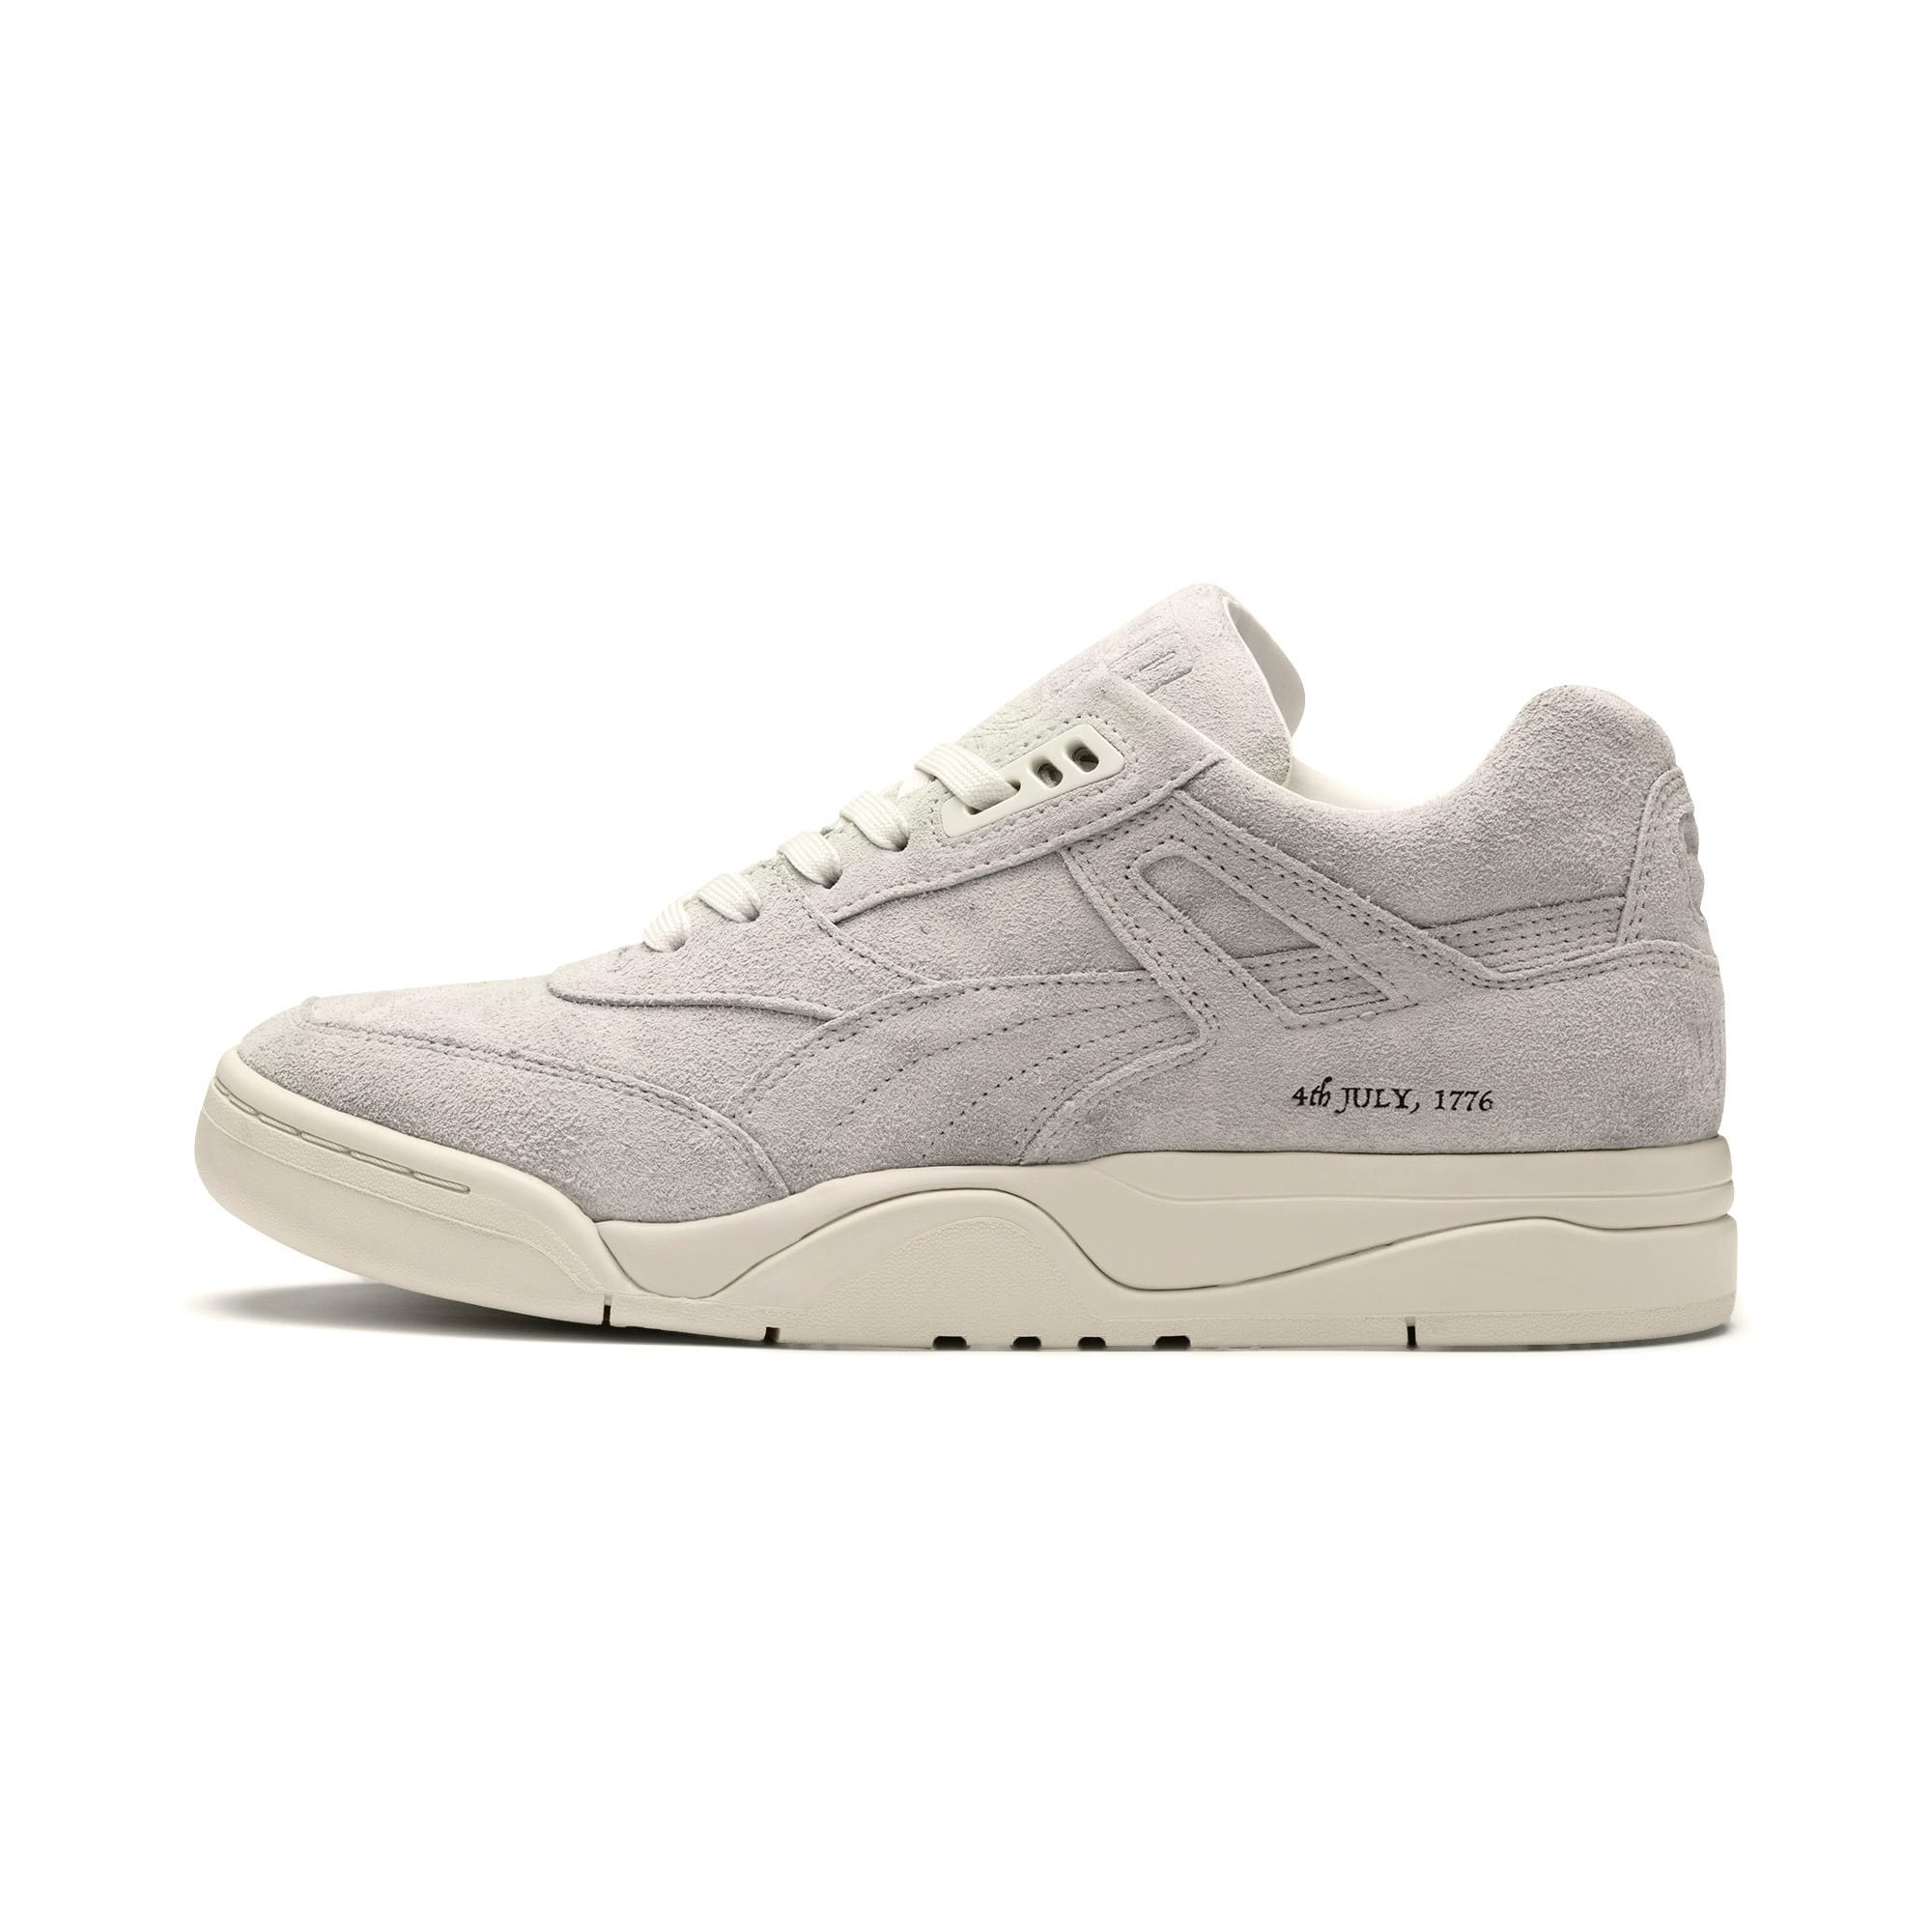 Thumbnail 1 of Palace Guard 4th of July Trainers, Whisper White-Puma Black, medium-IND